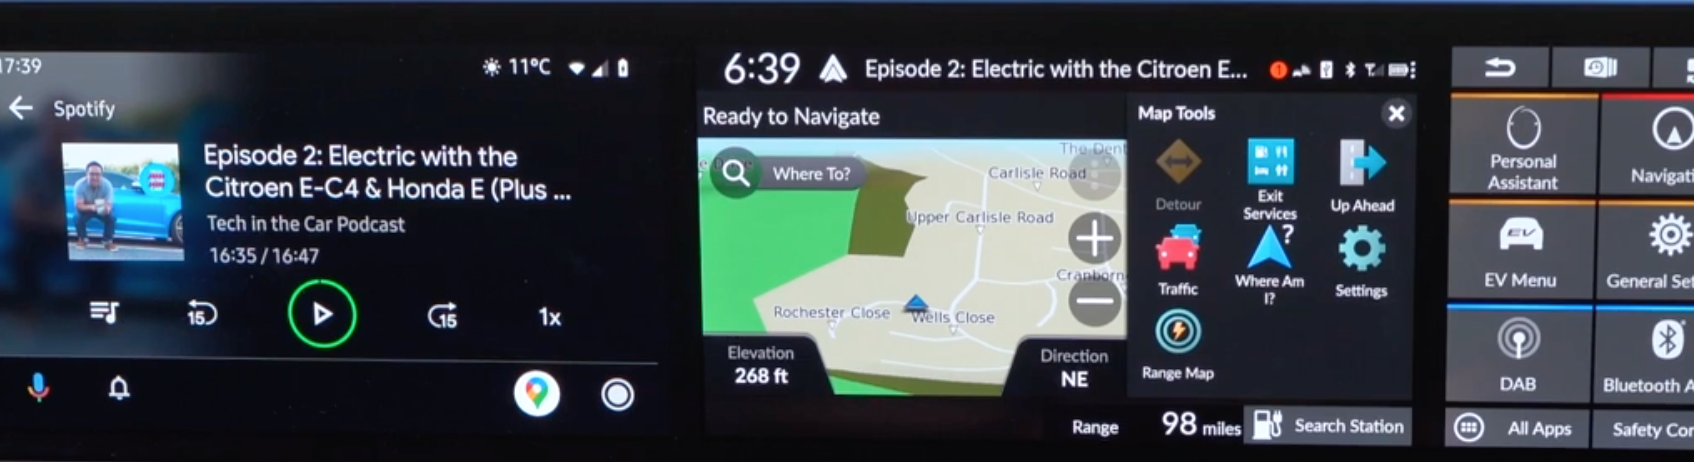 Map view on the right screen with navigation tools and Android Auto Spotify display on the left screen